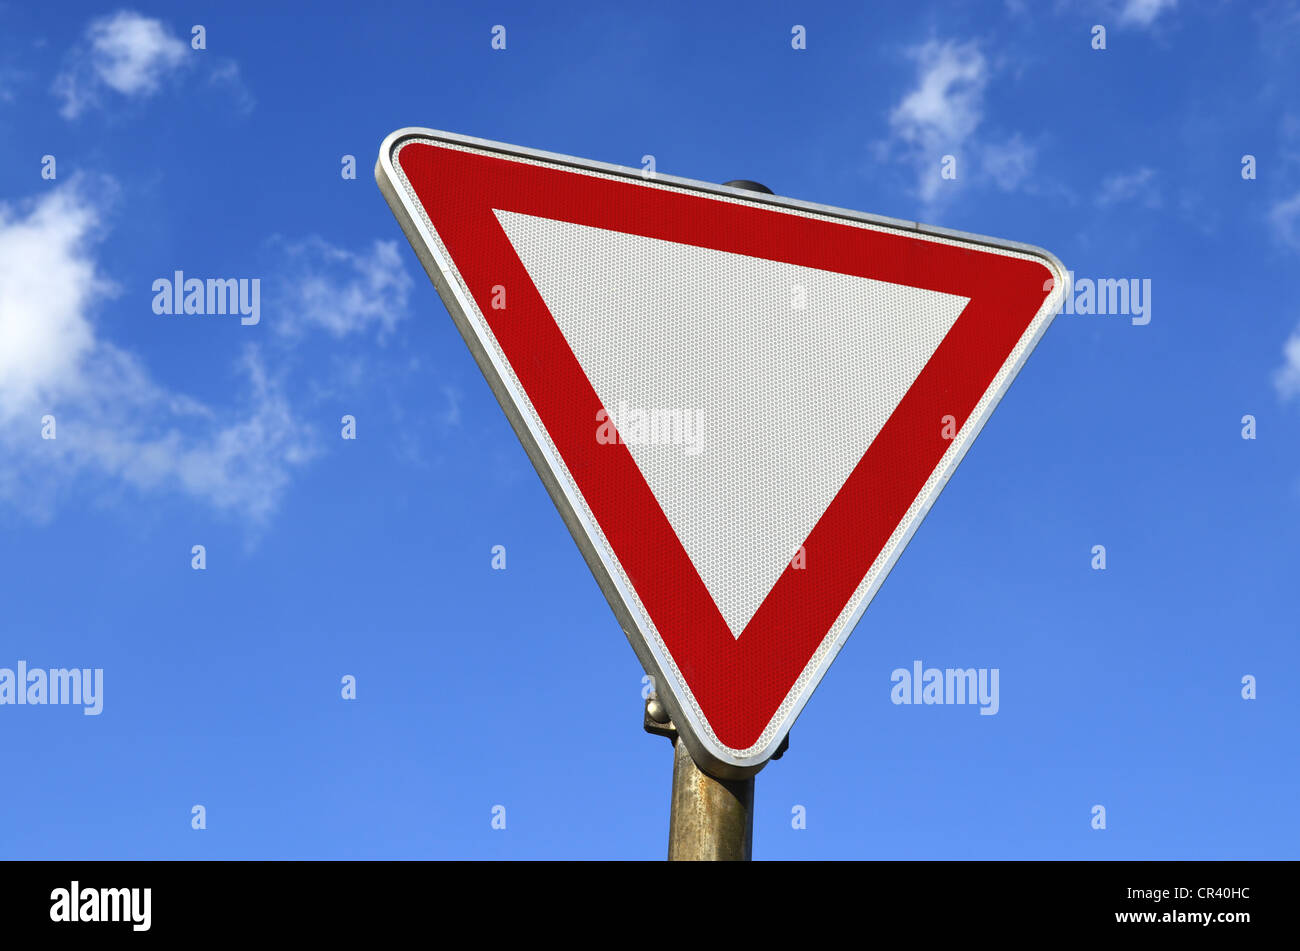 Traffic sign, give way, against a blue sky with clouds Stock Photo